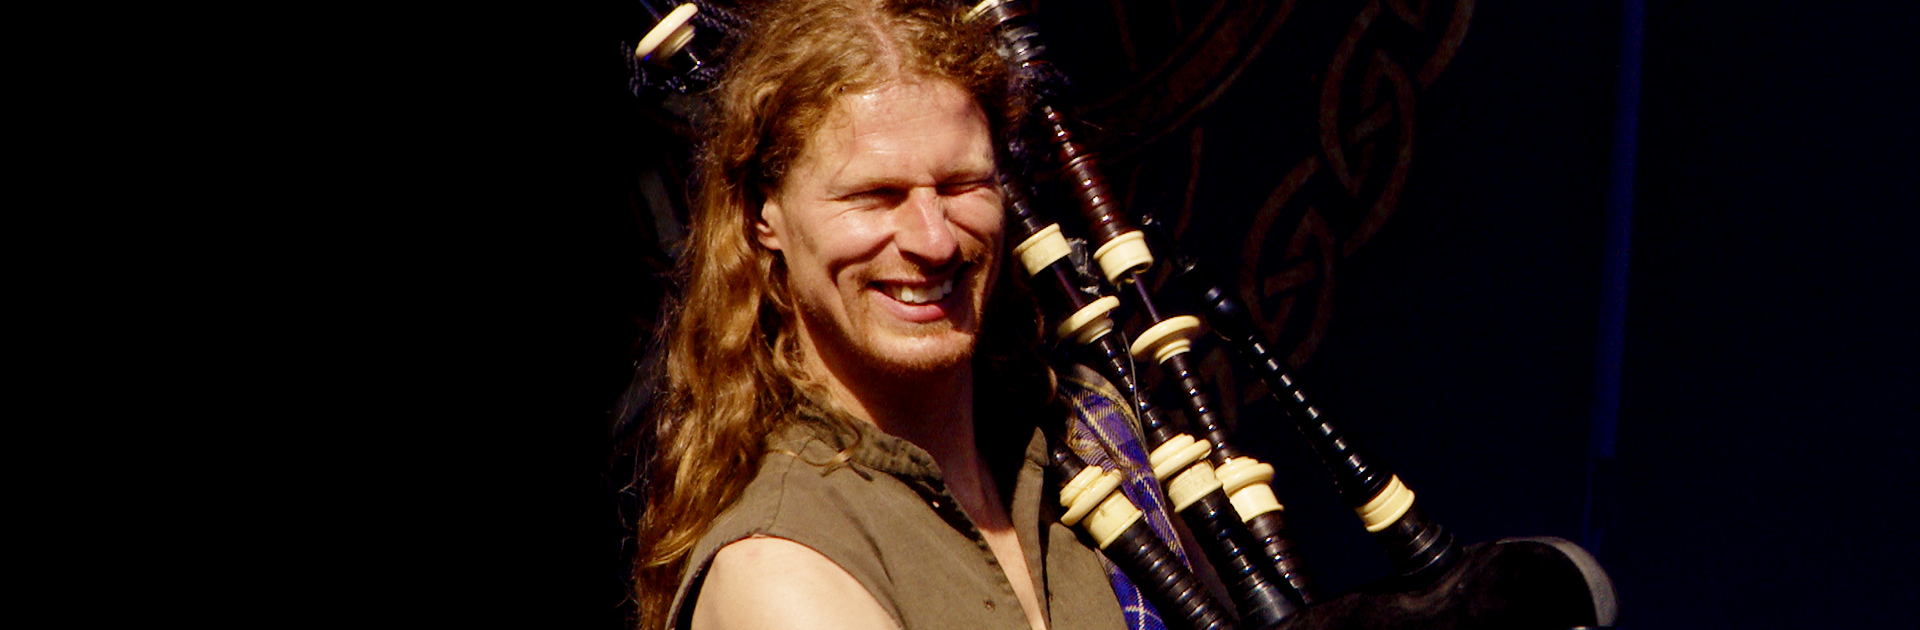 Heart-of-Steel-Scottish-bagpipes-Castlefest-Rapalje-Celtic-Folk-Music